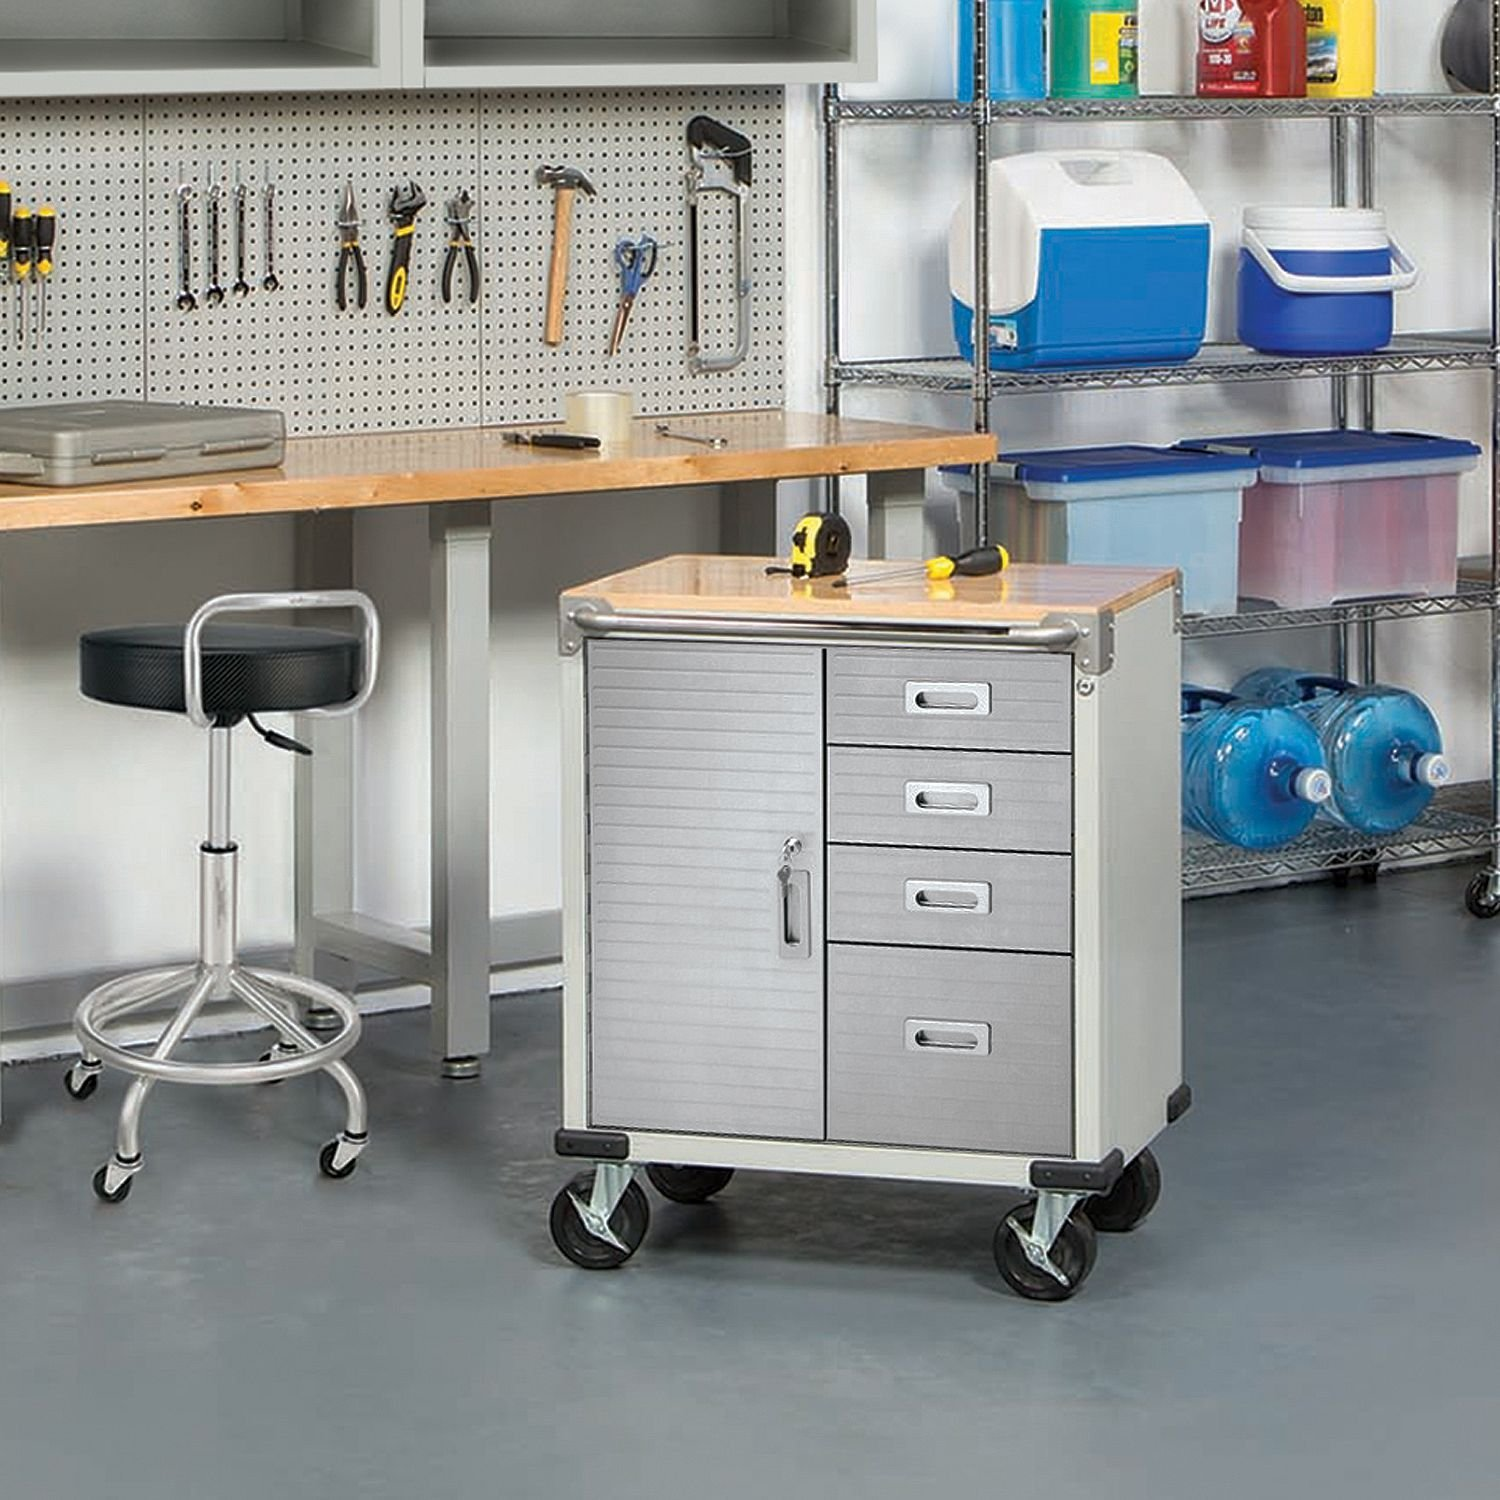 Get Quotations Most Por Super Heavy Duty Stainless Steel 5 Drawer Powder Coated Rust Resistant Rolling Storage Work